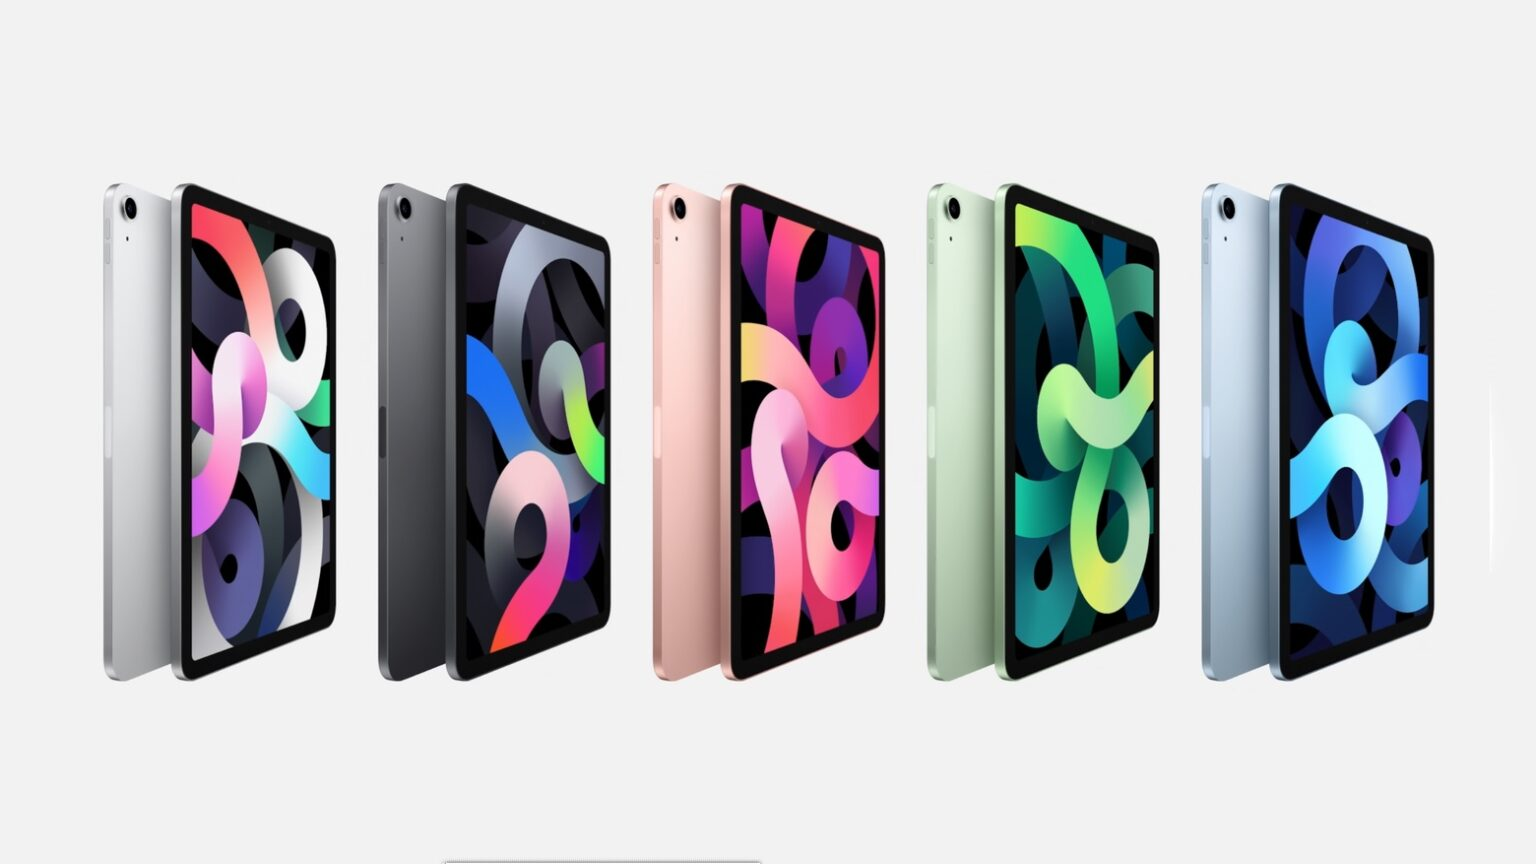 iPad Air 4 comes in a range of colors.